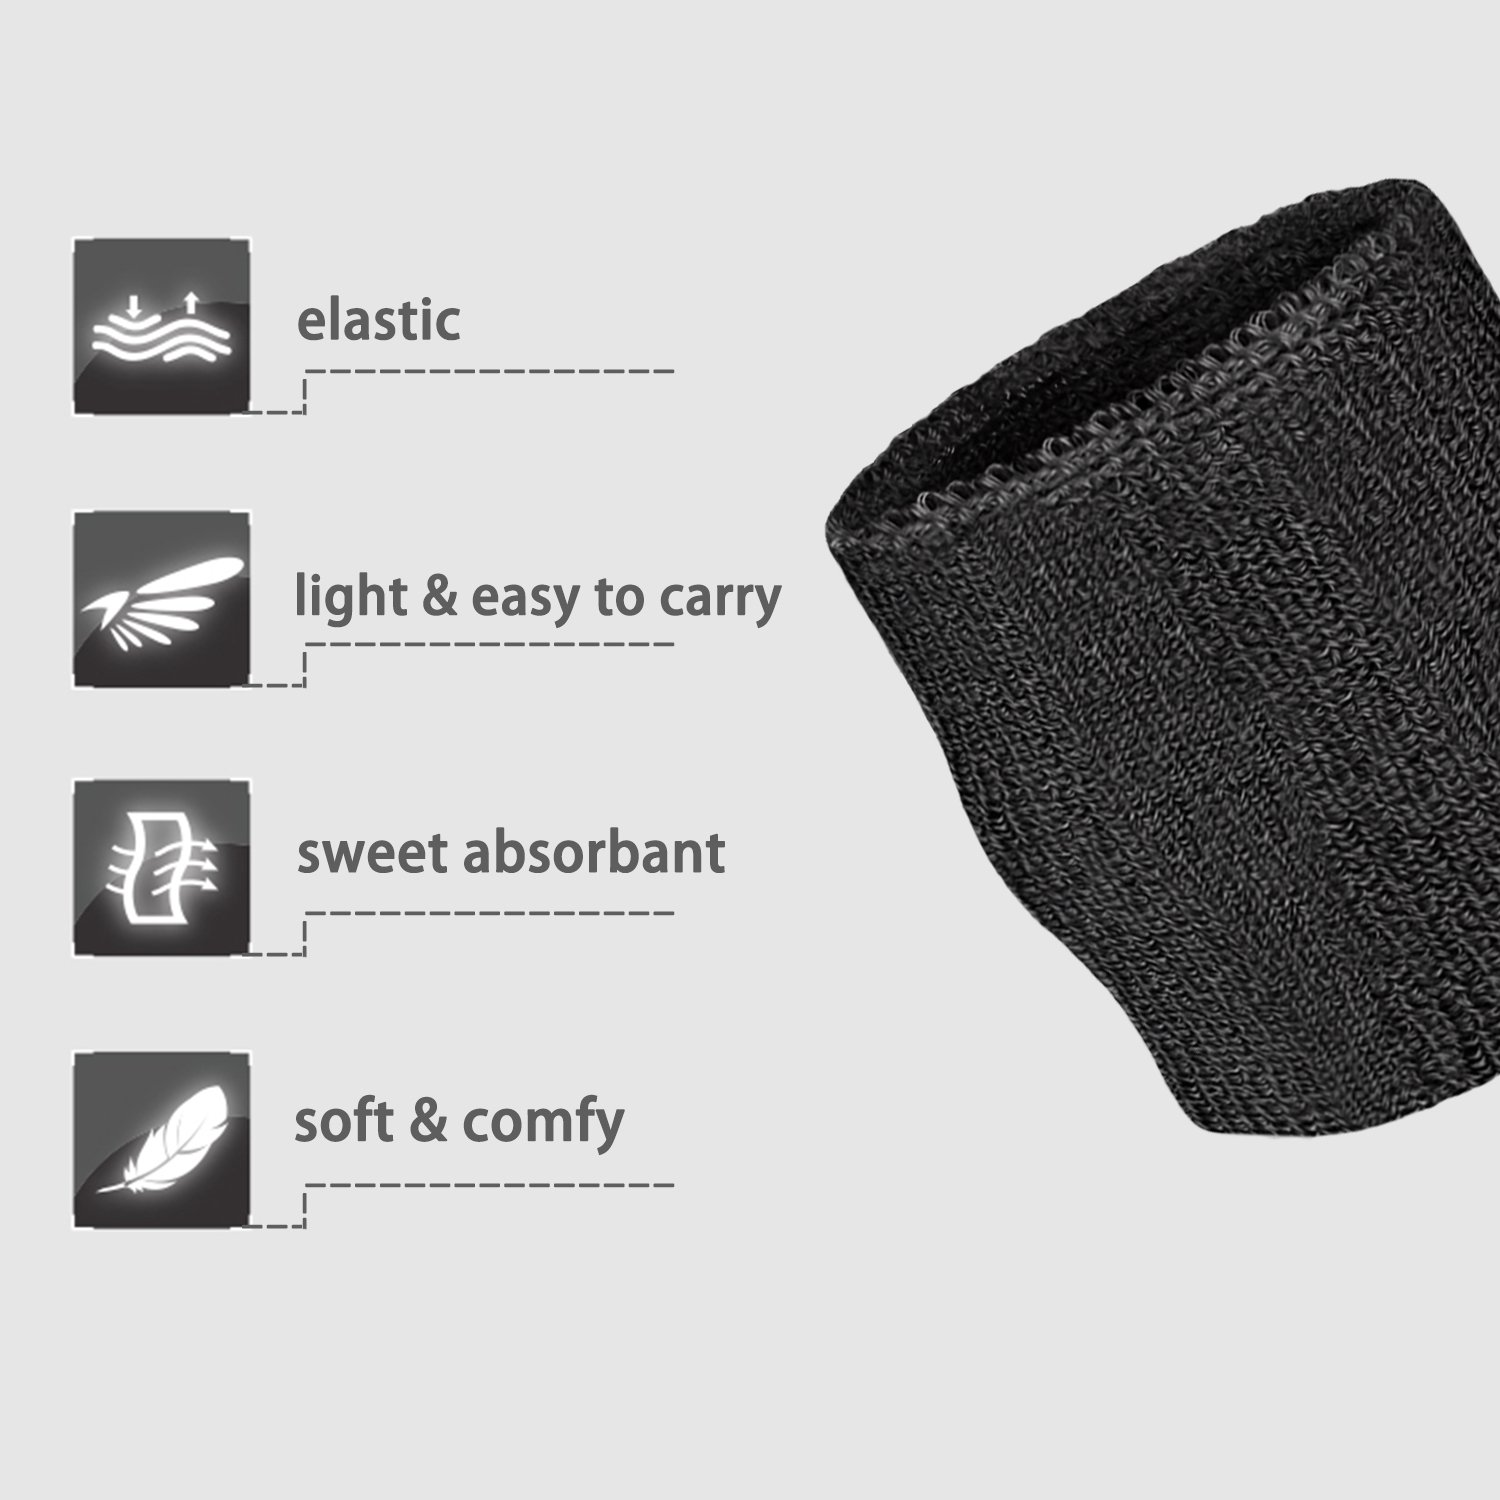 Elehere 2018 New Sweatband Wristband for Sports Basketball Football Absorbent Party Outdoor 3.5'' Pack of 6 (Black- Headbands & Wristbands) by Elehere (Image #5)